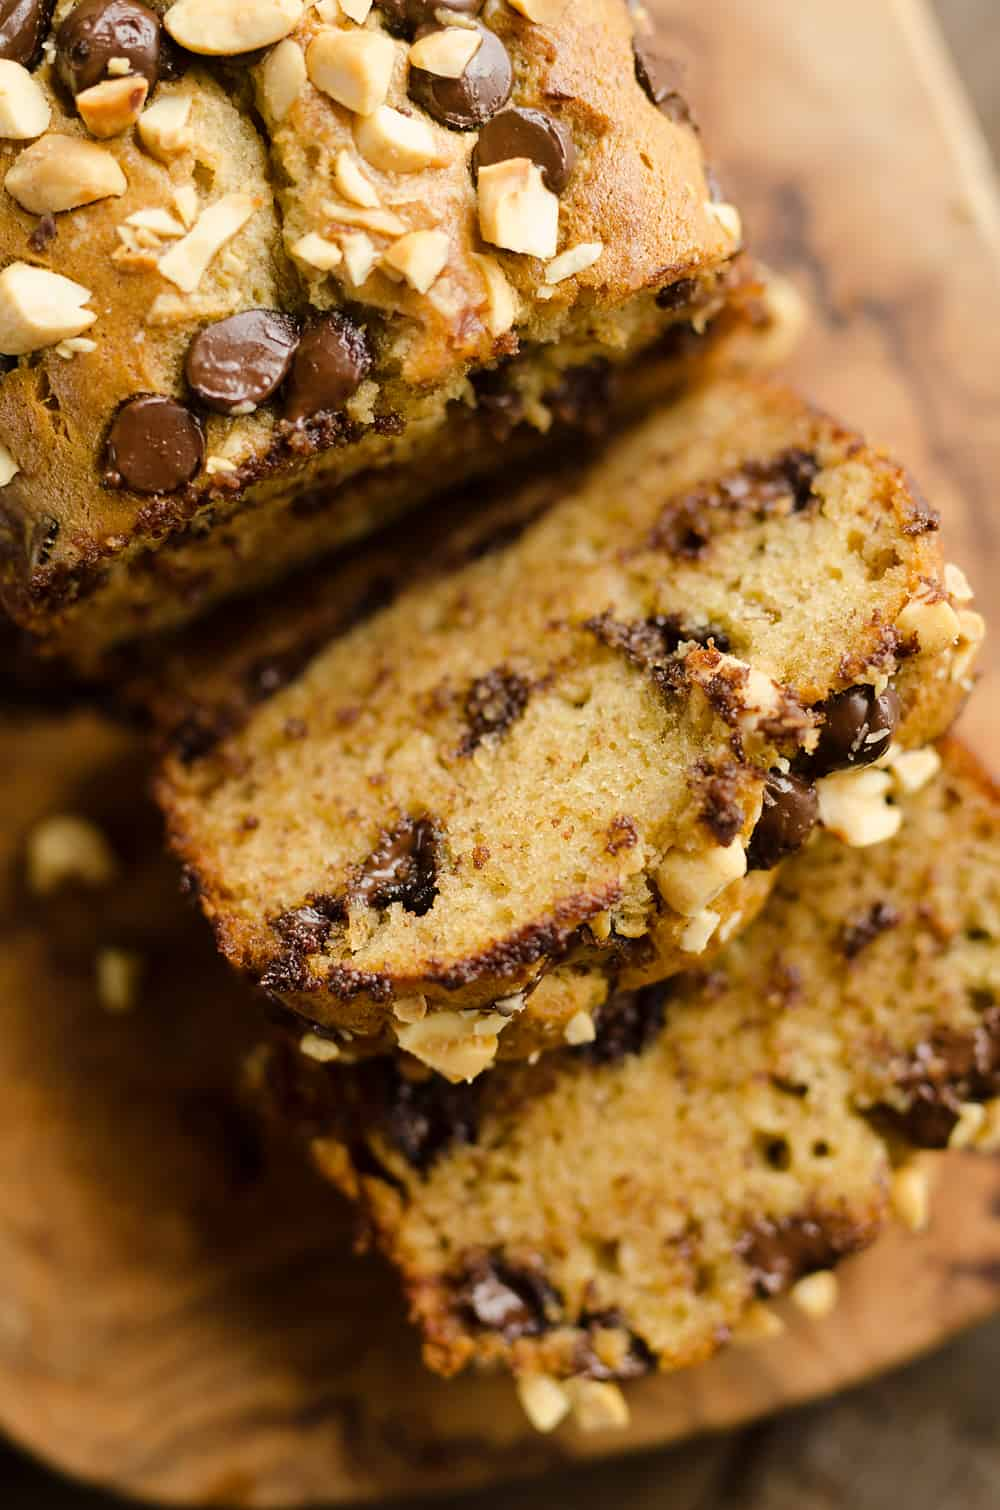 Peanut Butter Chocolate Banana Bread slice with melted chocolate